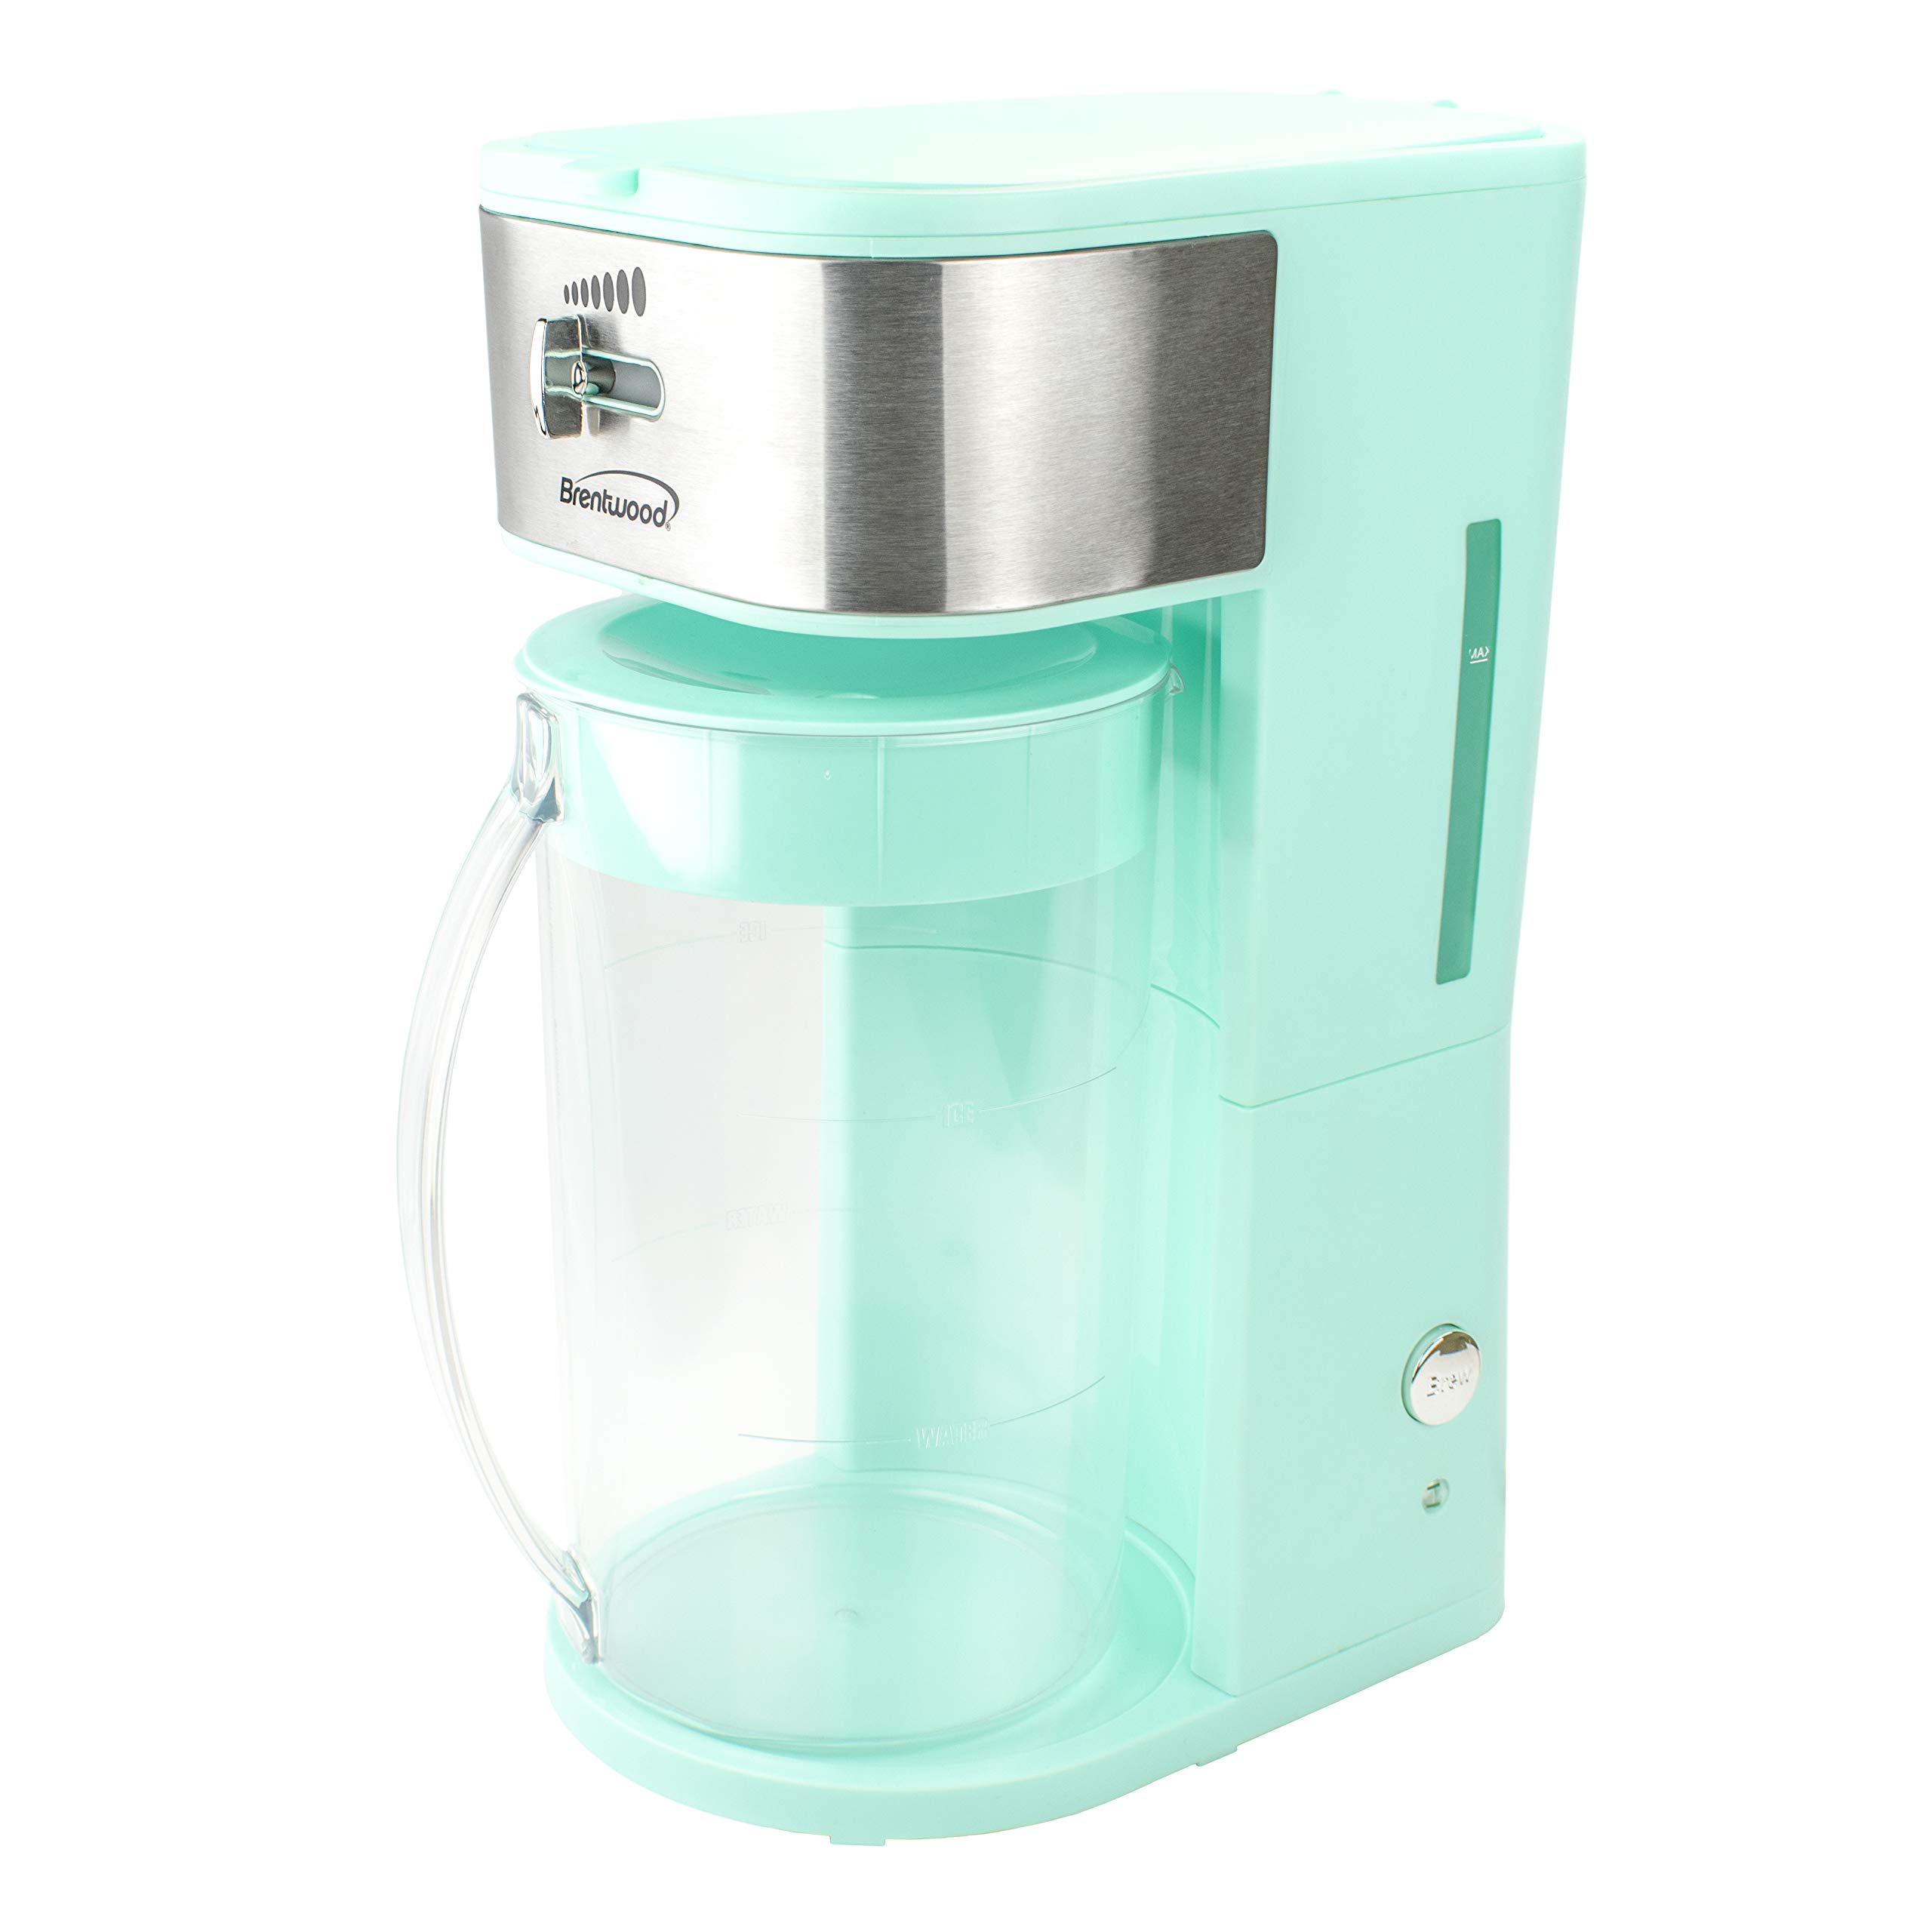 Brentwood Iced Tea and Coffee Maker with 64oz Pitcher (BLUE) by Brentwood (Image #2)